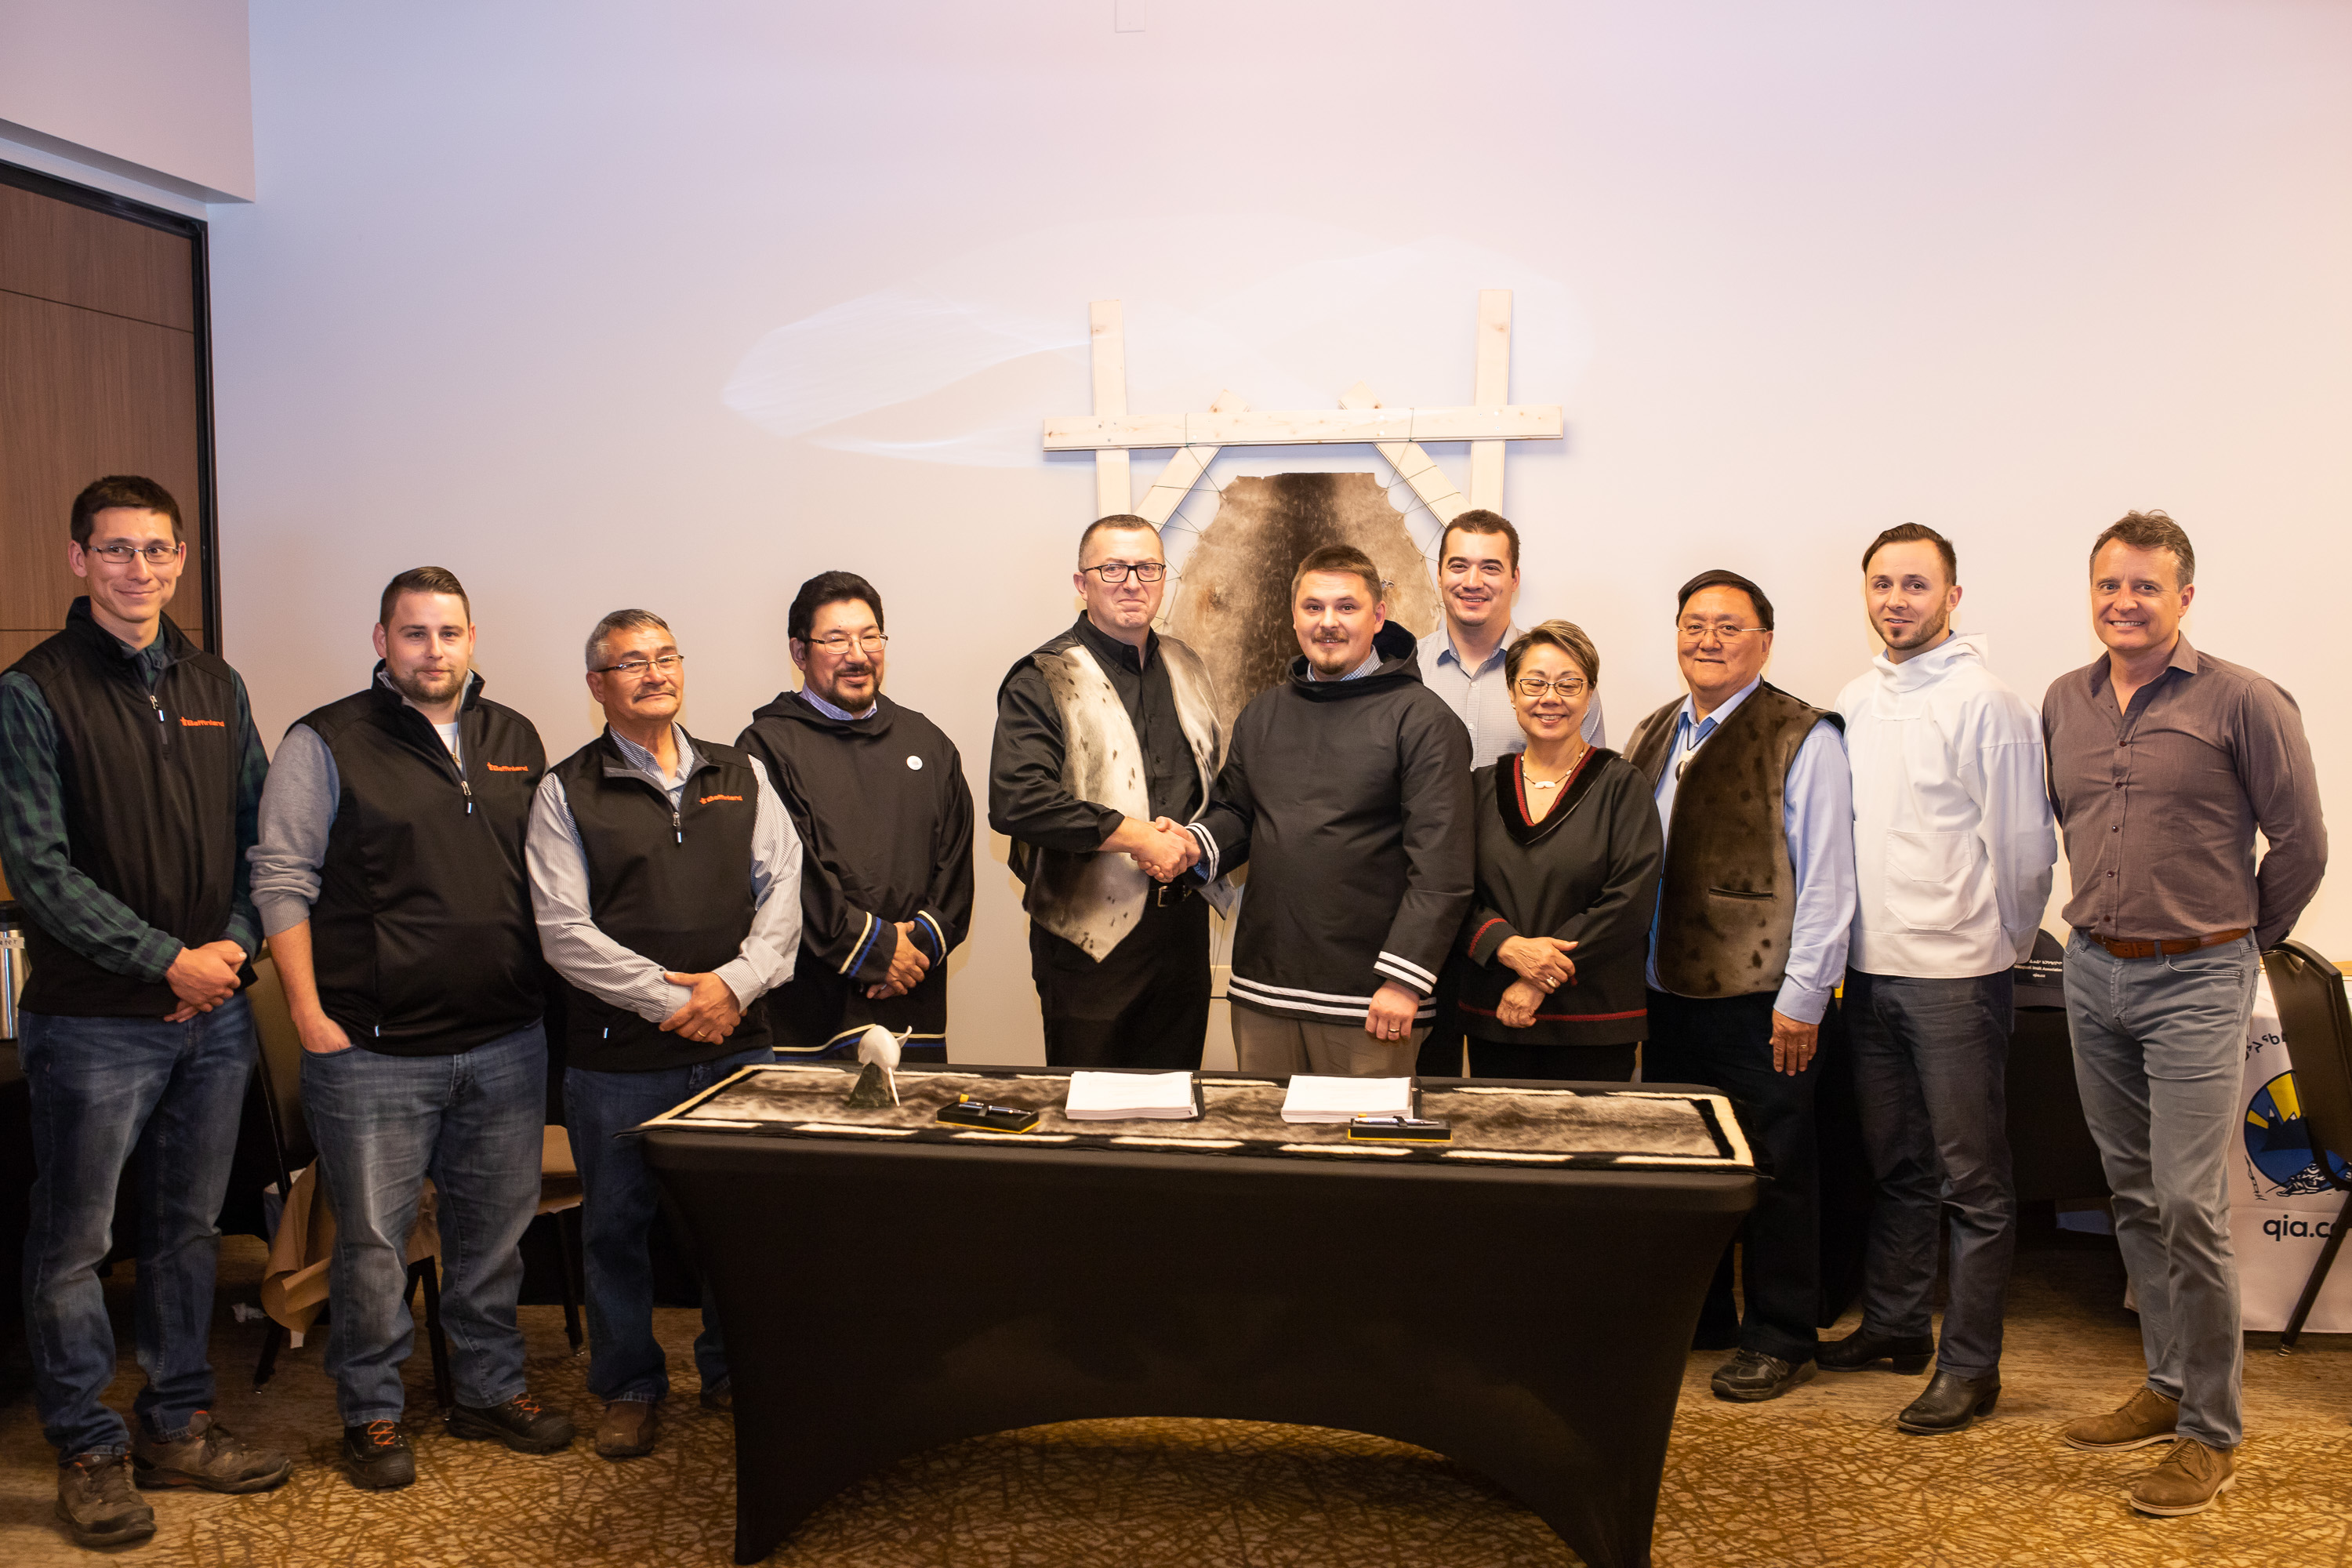 Baffinland Iron Mines Corporation President and CEO Brian Penney (center left) is pictured with P.J. Akeeagok, President of the Qikiqtani Inuit Association, following the signing of the Amended Mary River Project Inuit Impact Benefit Agreement.